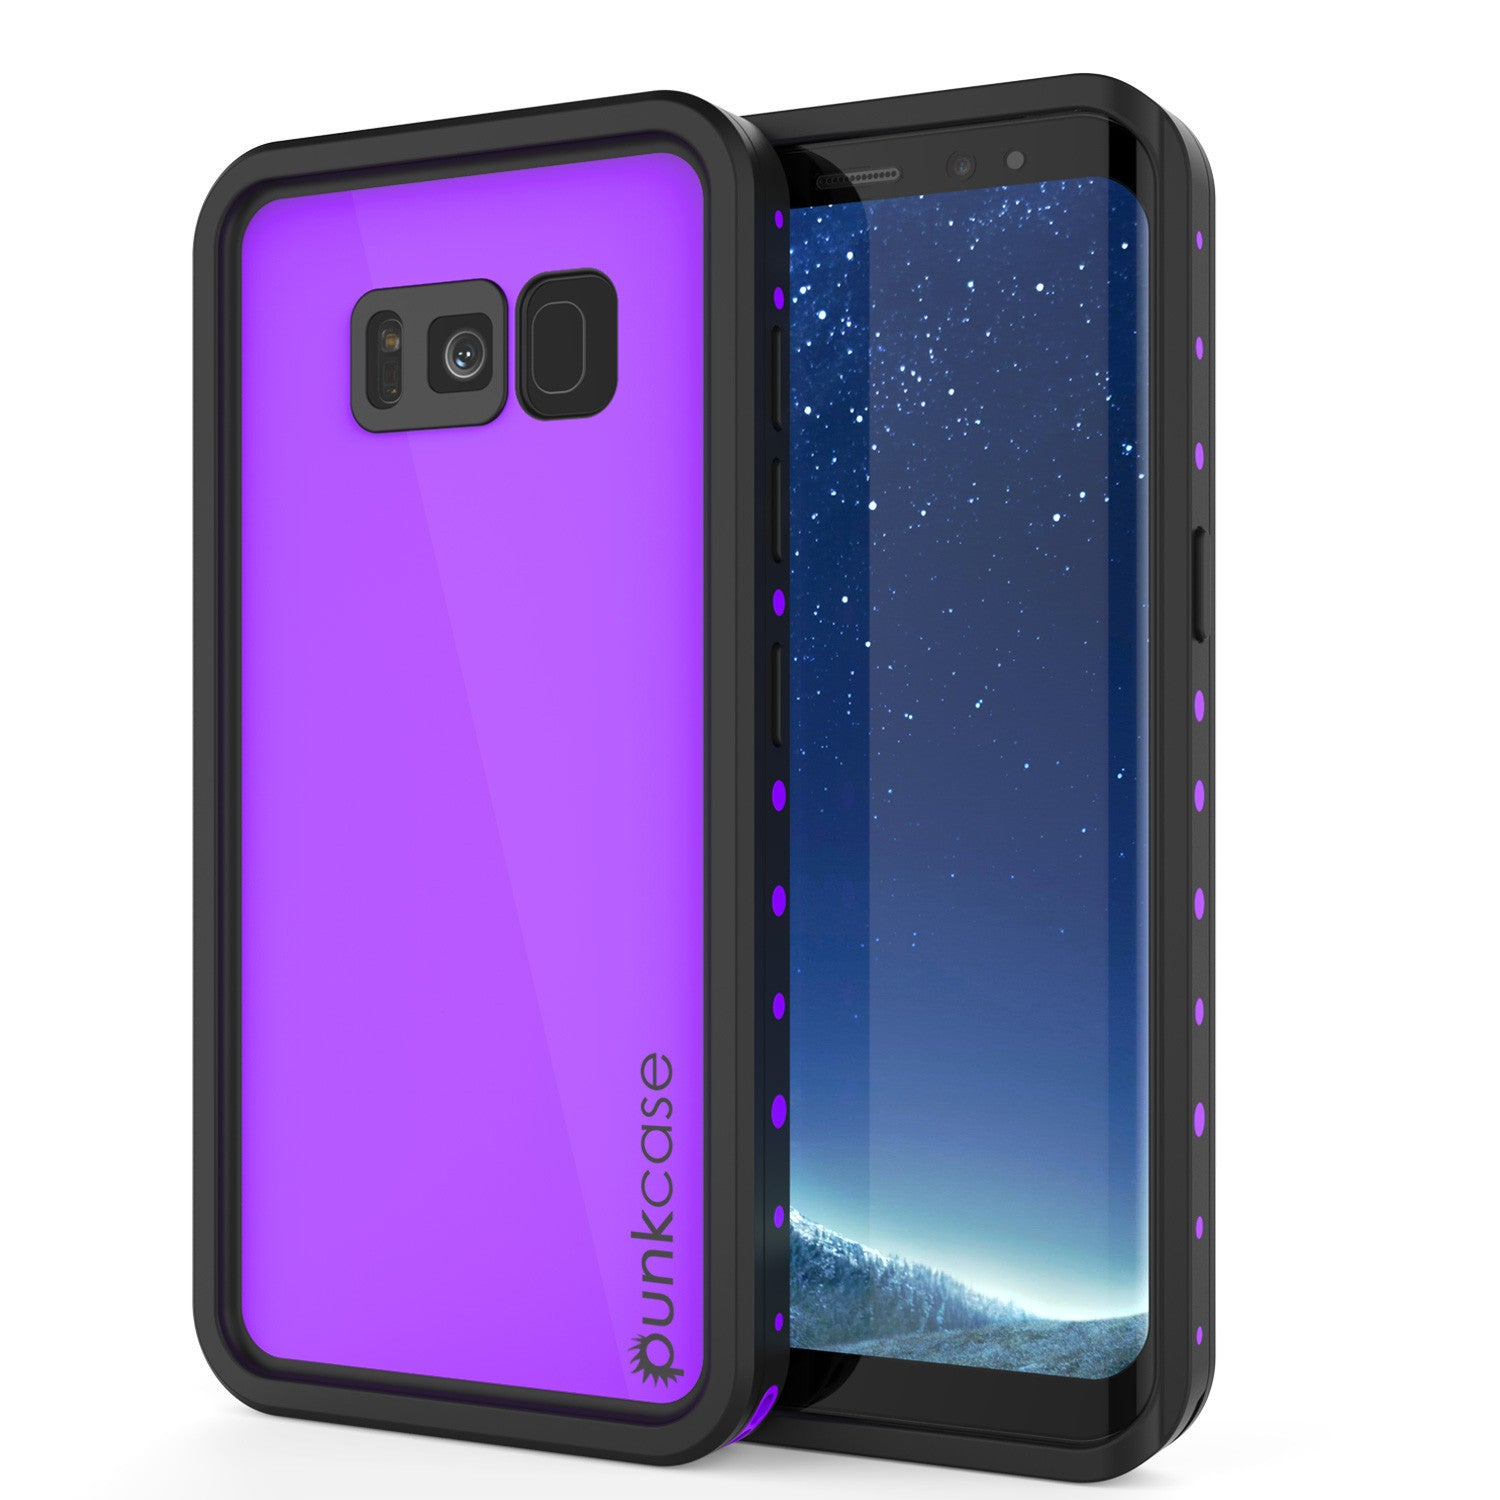 Galaxy S8 Plus Waterproof Case PunkCase StudStar Purple Thin 6.6ft Underwater IP68 Shock/Snow Proof